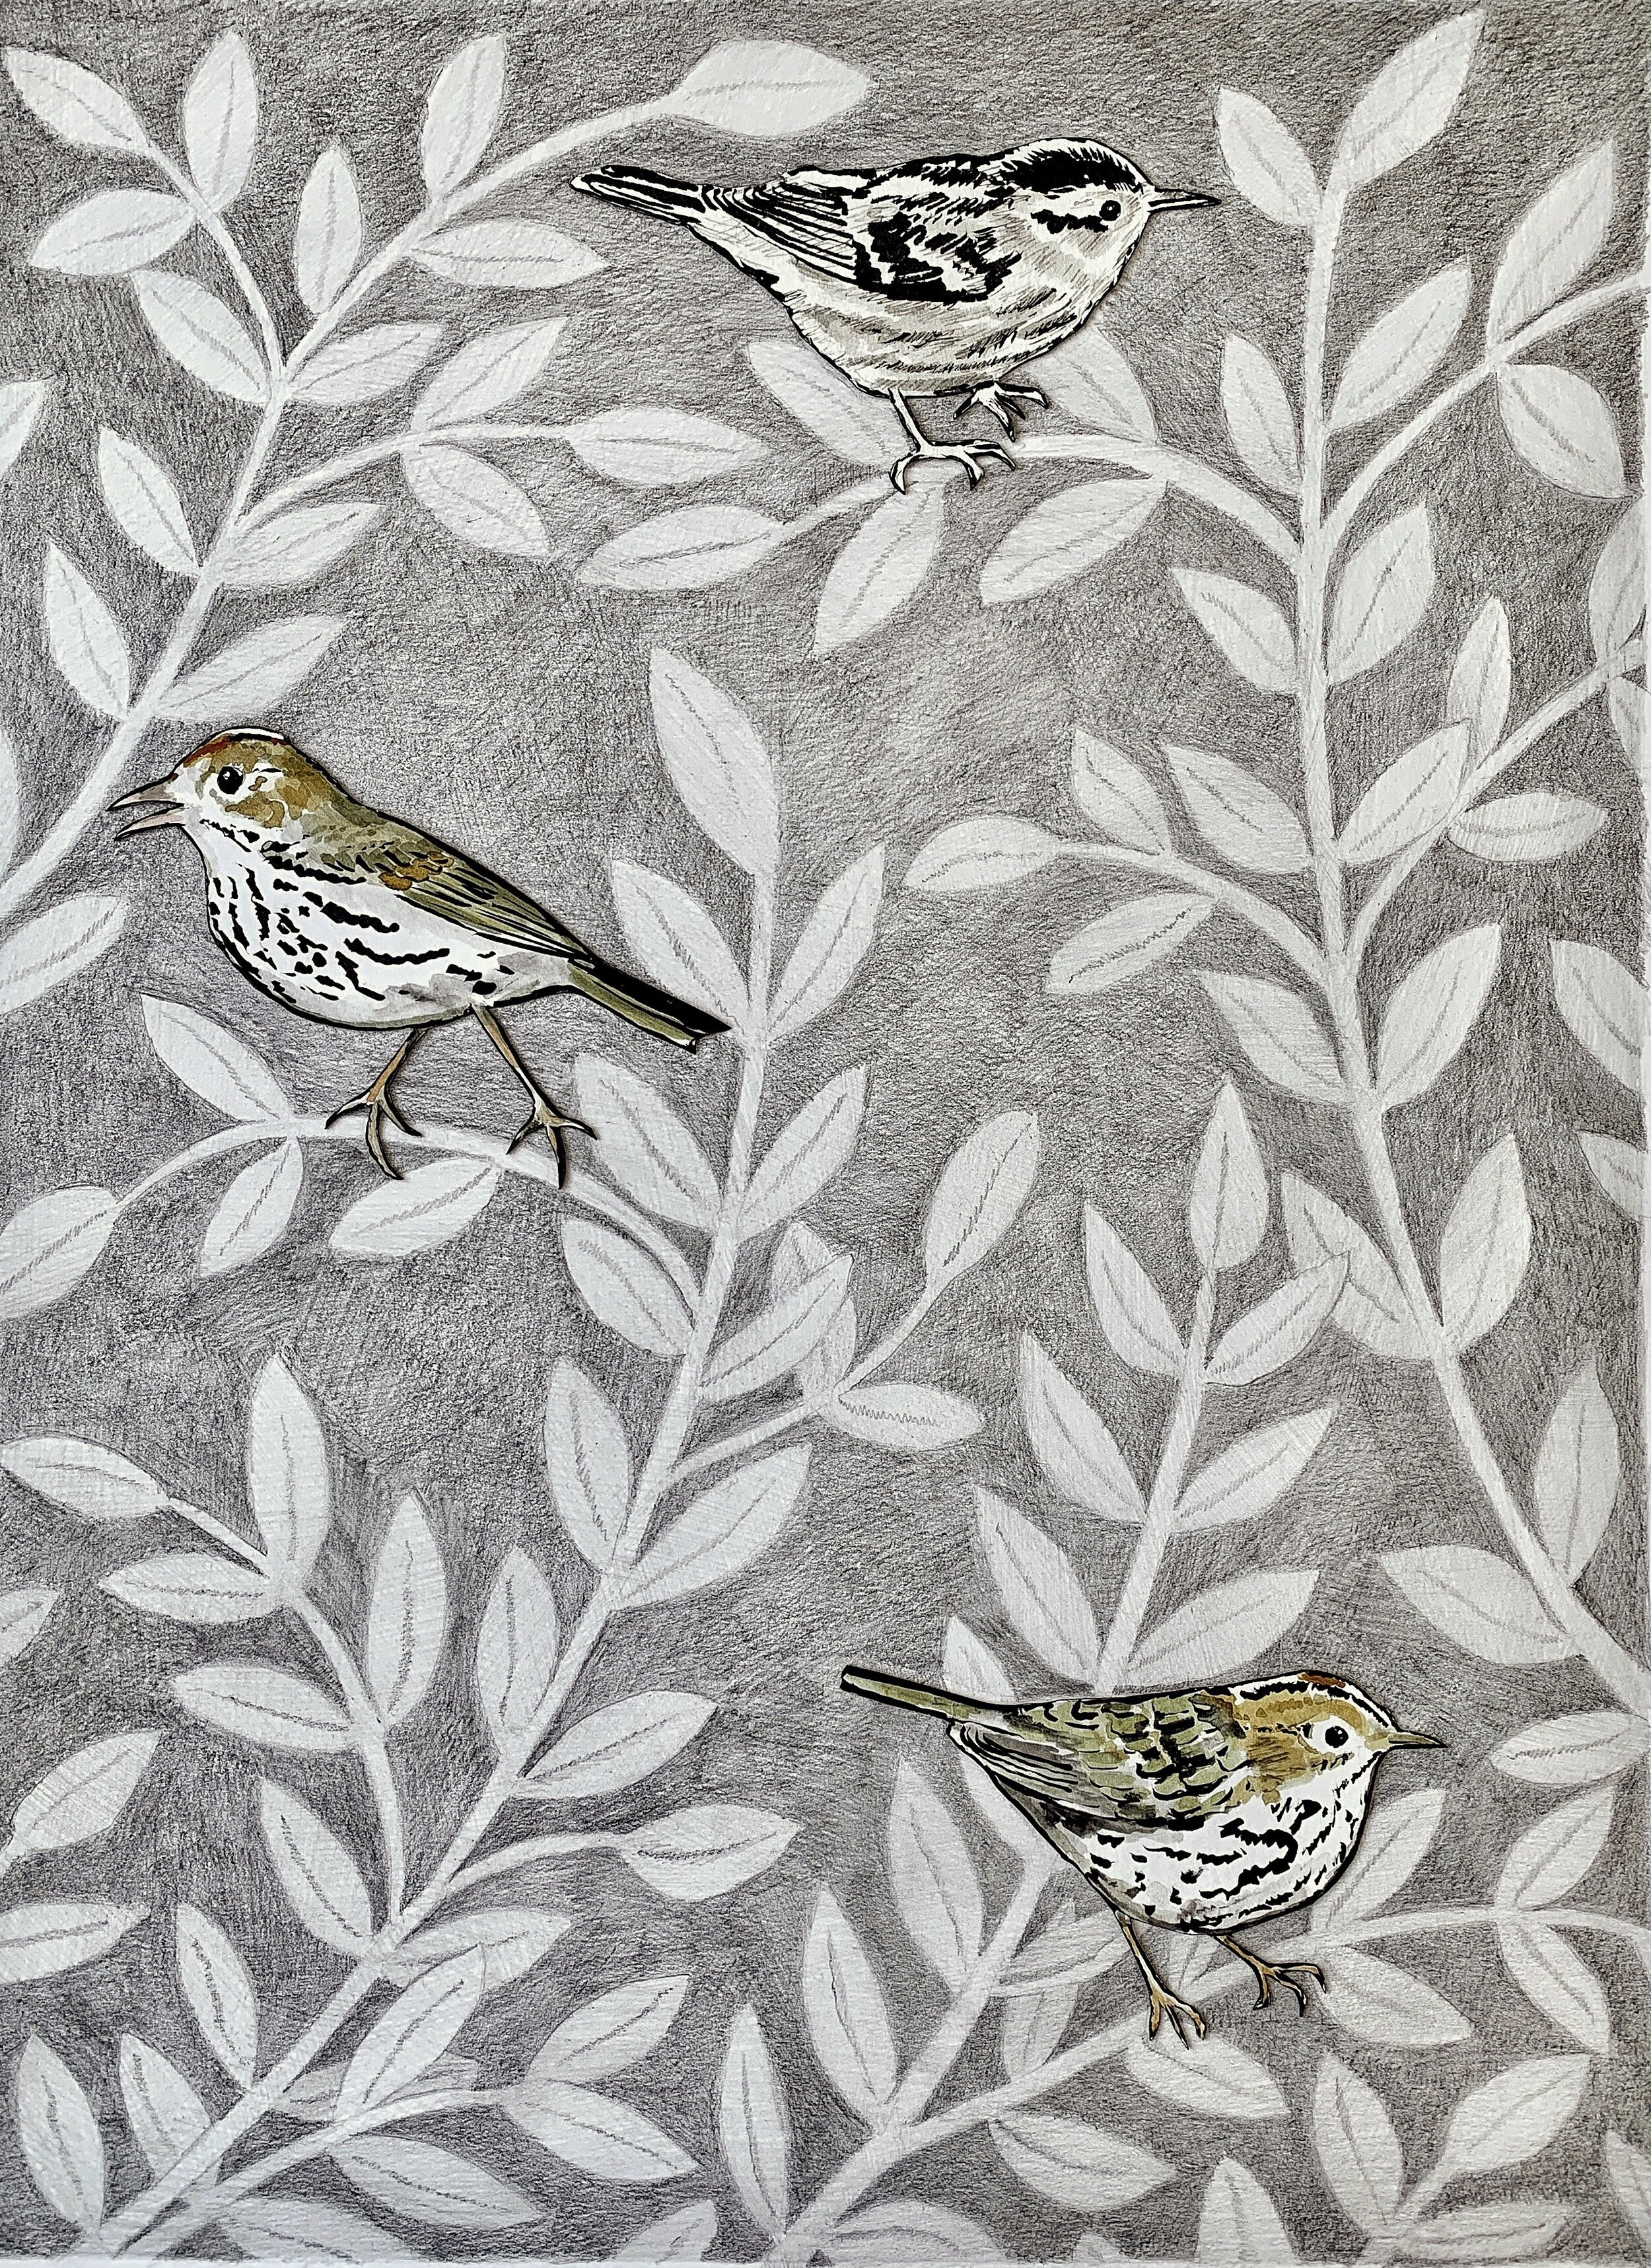 Oven Birds and a Black and White Warbler , 2019 graphite and ink on paper